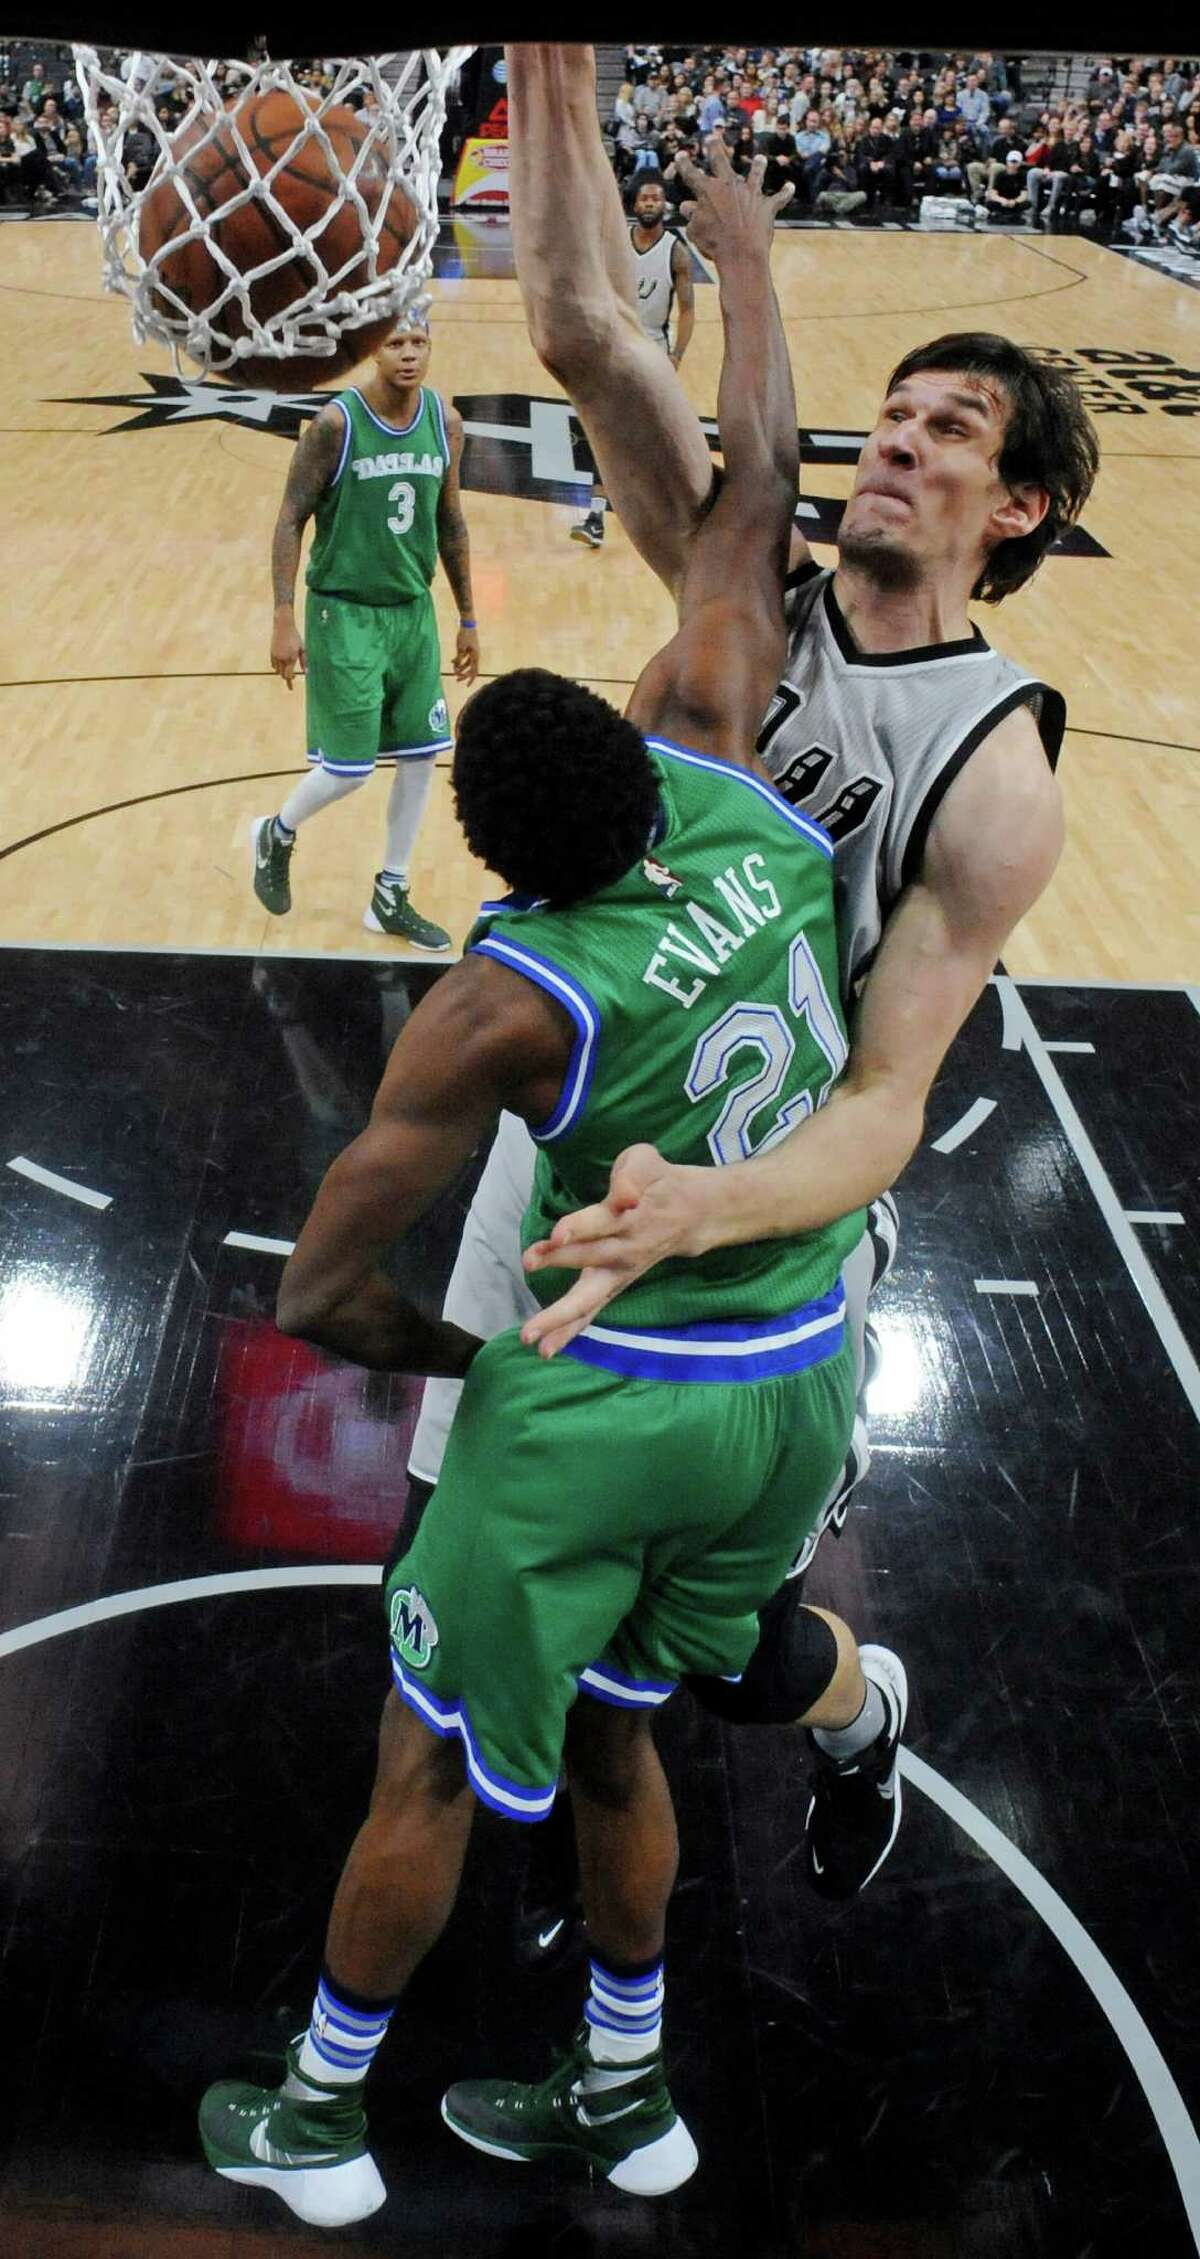 Spurs' Boban Marjanovic dunks over Dallas Mavericks' Jeremy Evans during second half action on Jan. 17, 2016 at the AT&T Center. Marjanovic received a technical foul for taunting after the play.